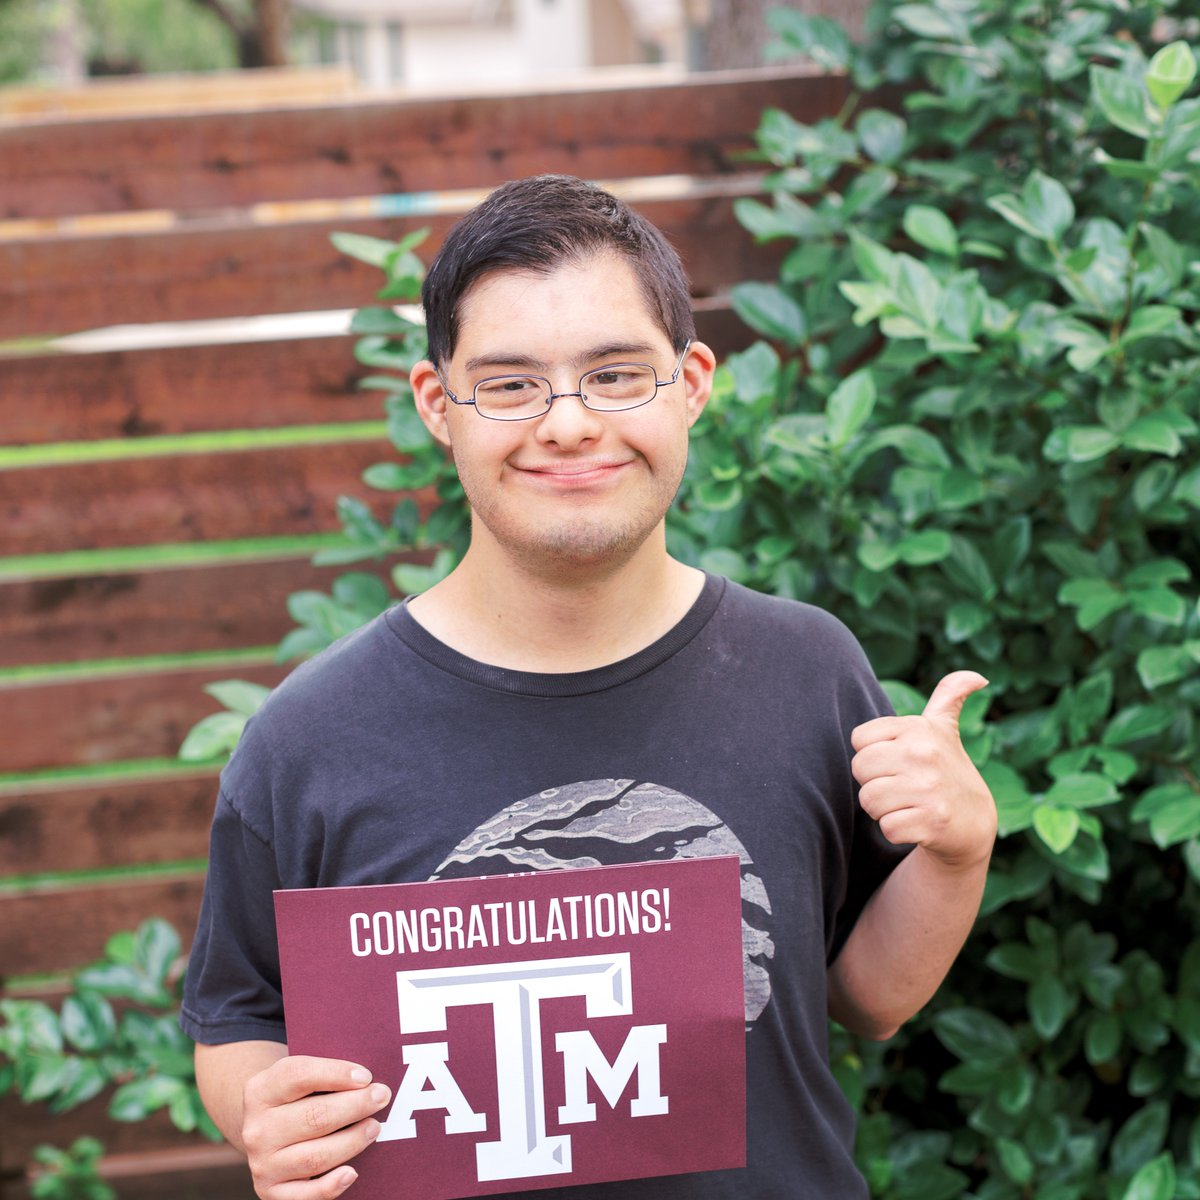 Miguel Gonzalez is #Aggiebound!  #TAMU23  He is 1 of 4 students in our new program,  @aggieachieve! Aggie ACHIEVE is a 4-year inclusive higher ed program for students with developmental &amp; intellectual disabilities, &amp; the first program of its kind in Texas! <br>http://pic.twitter.com/HkteQE0VpT